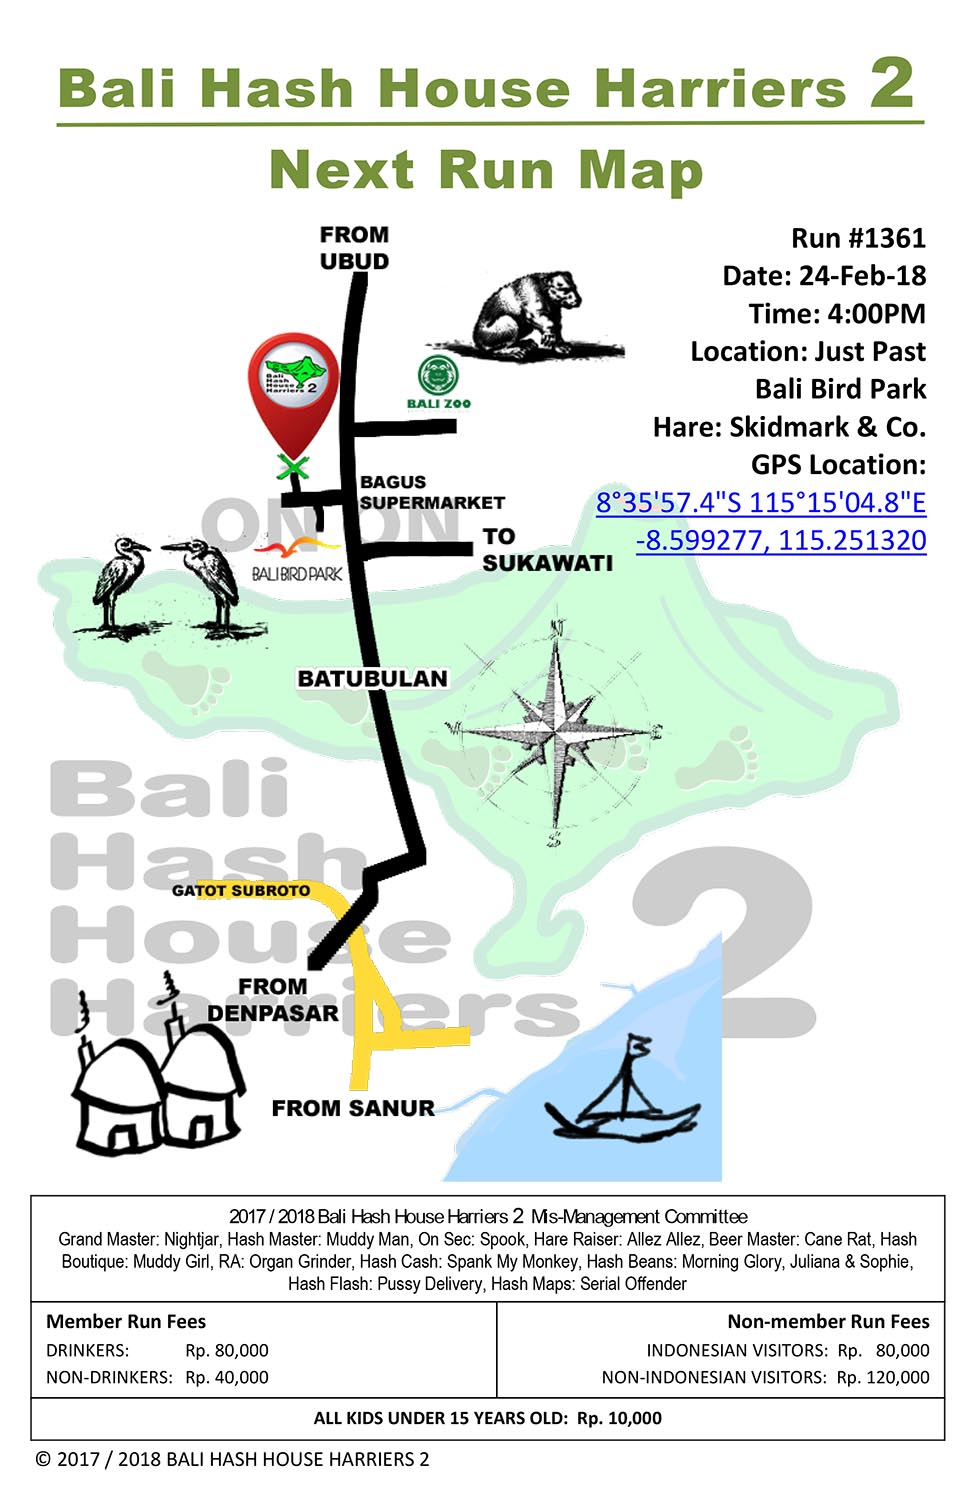 BHHH2 Next Run Map 1361 Next to Bali Bird Park 24-Feb-18